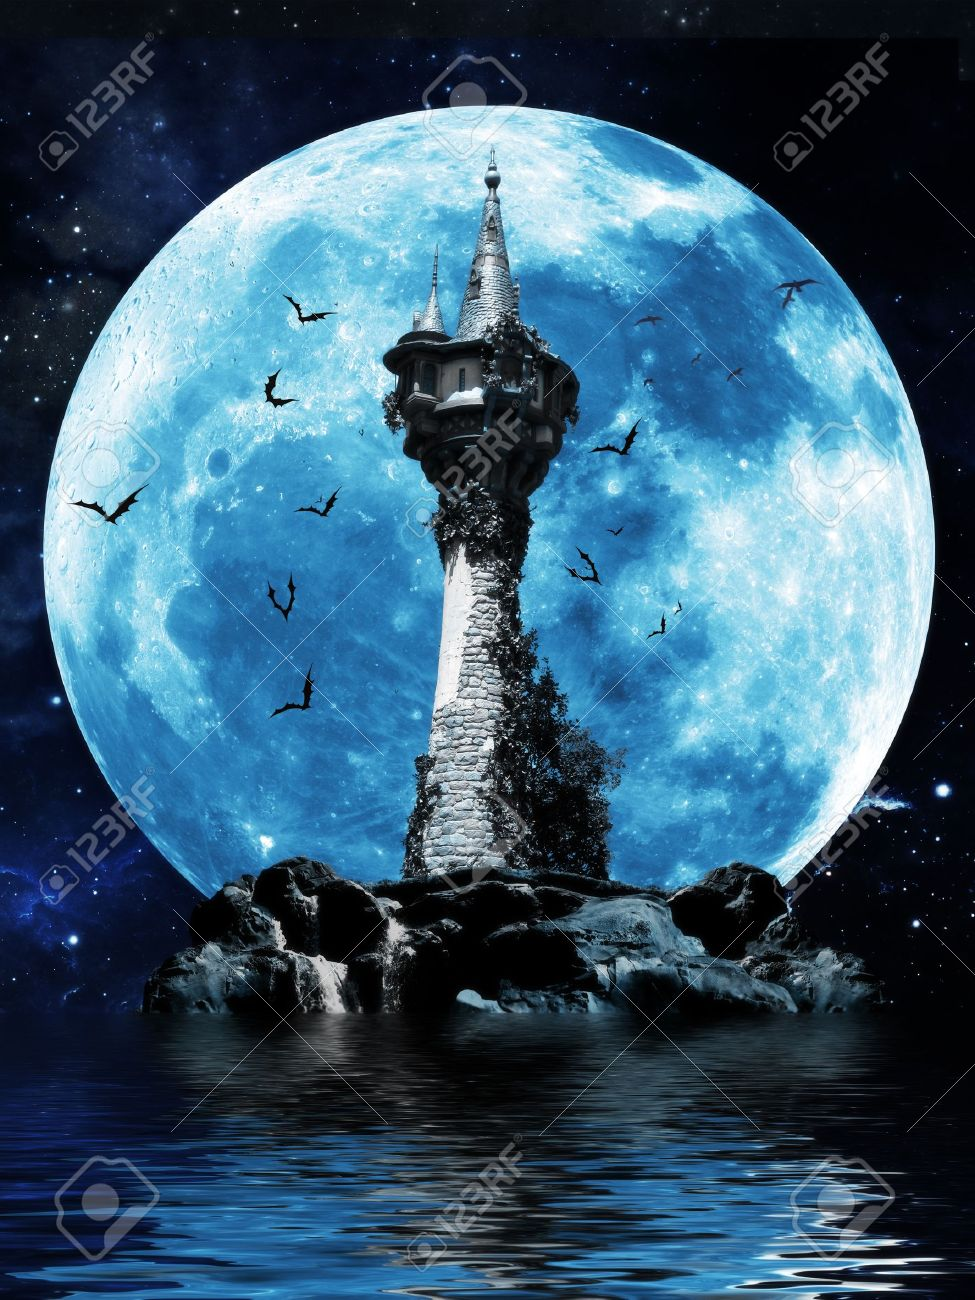 Witches tower, Halloween image of a dark mysterious tower on a rock island with bats and a moon background Stock Photo - 20628206